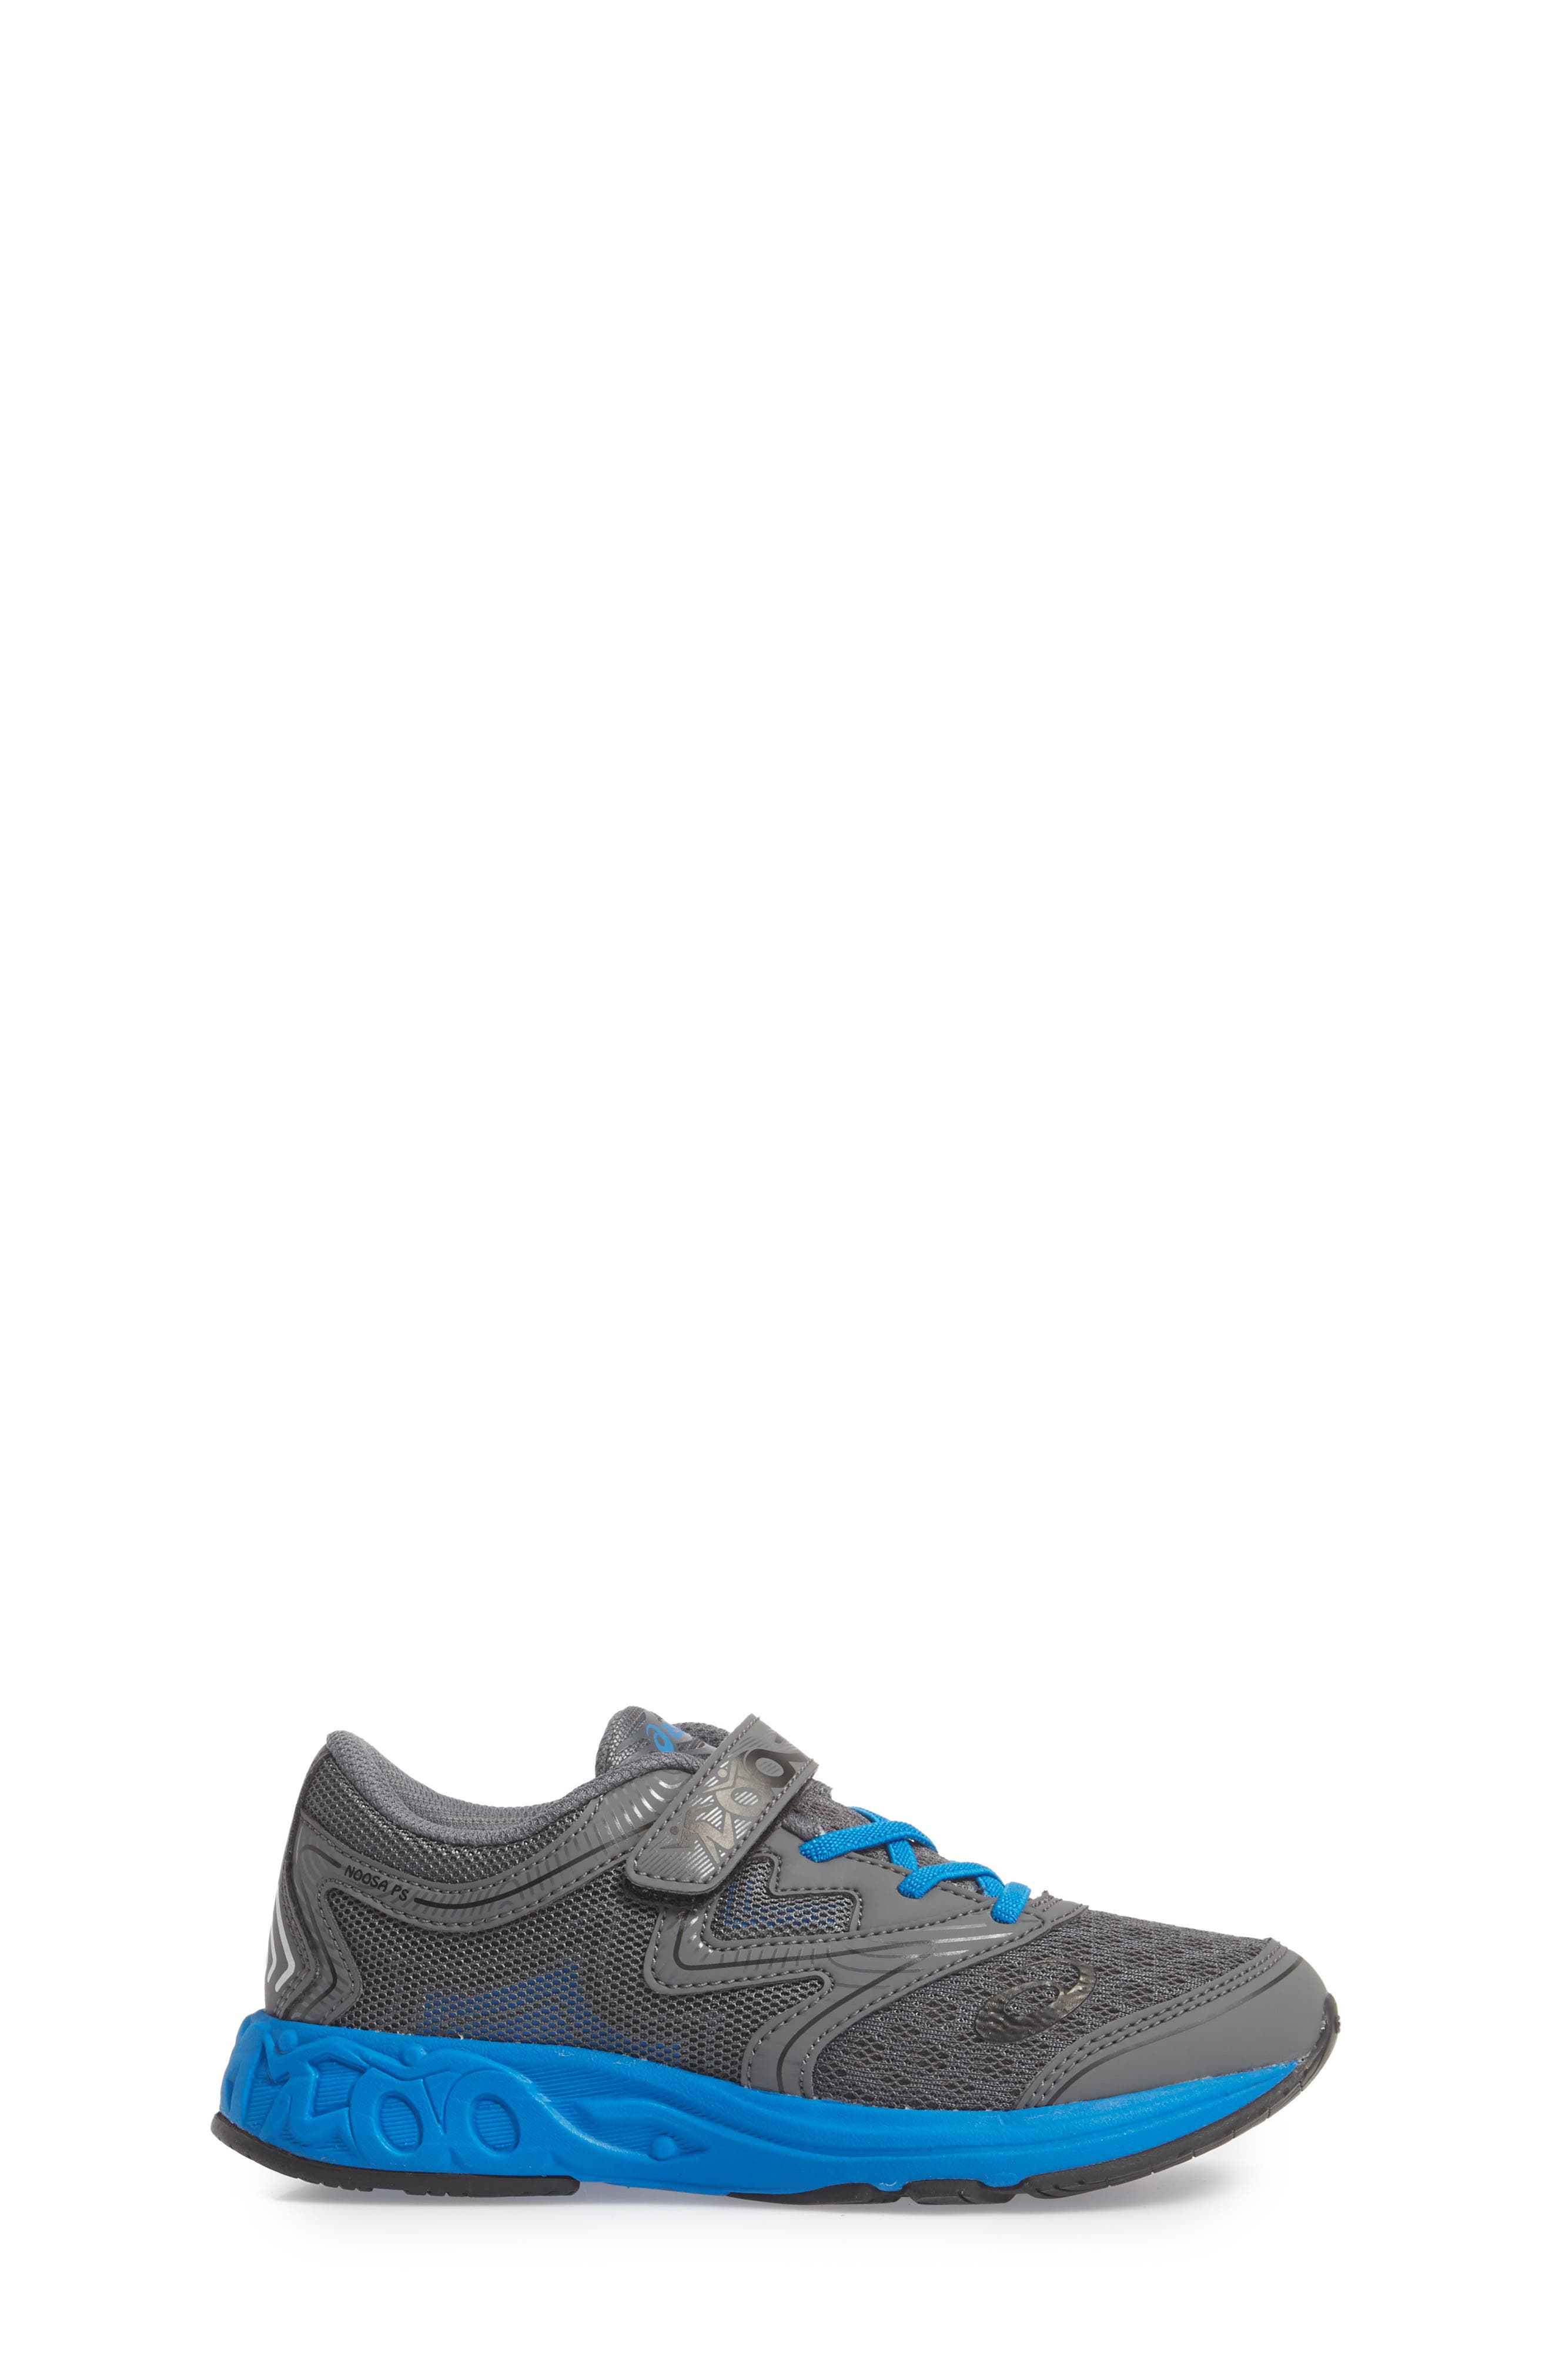 Noosa PS Sneaker,                             Alternate thumbnail 3, color,                             074